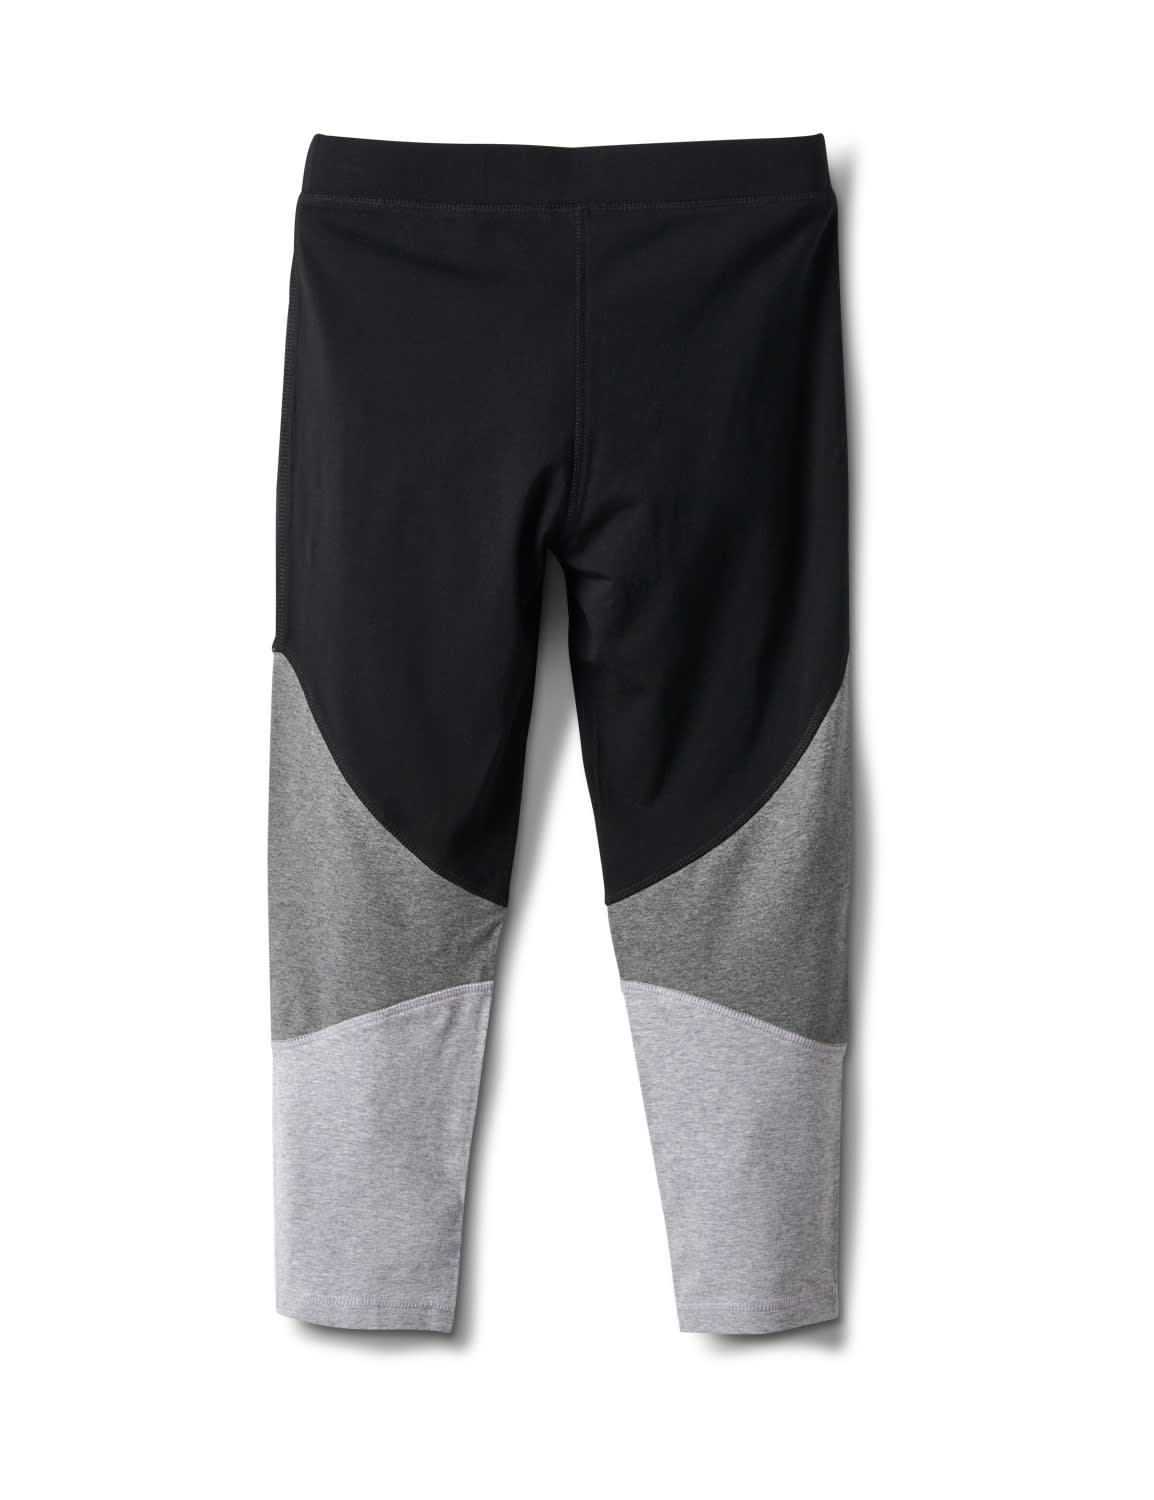 Color Block Knit Capri - Grey/Black - Back